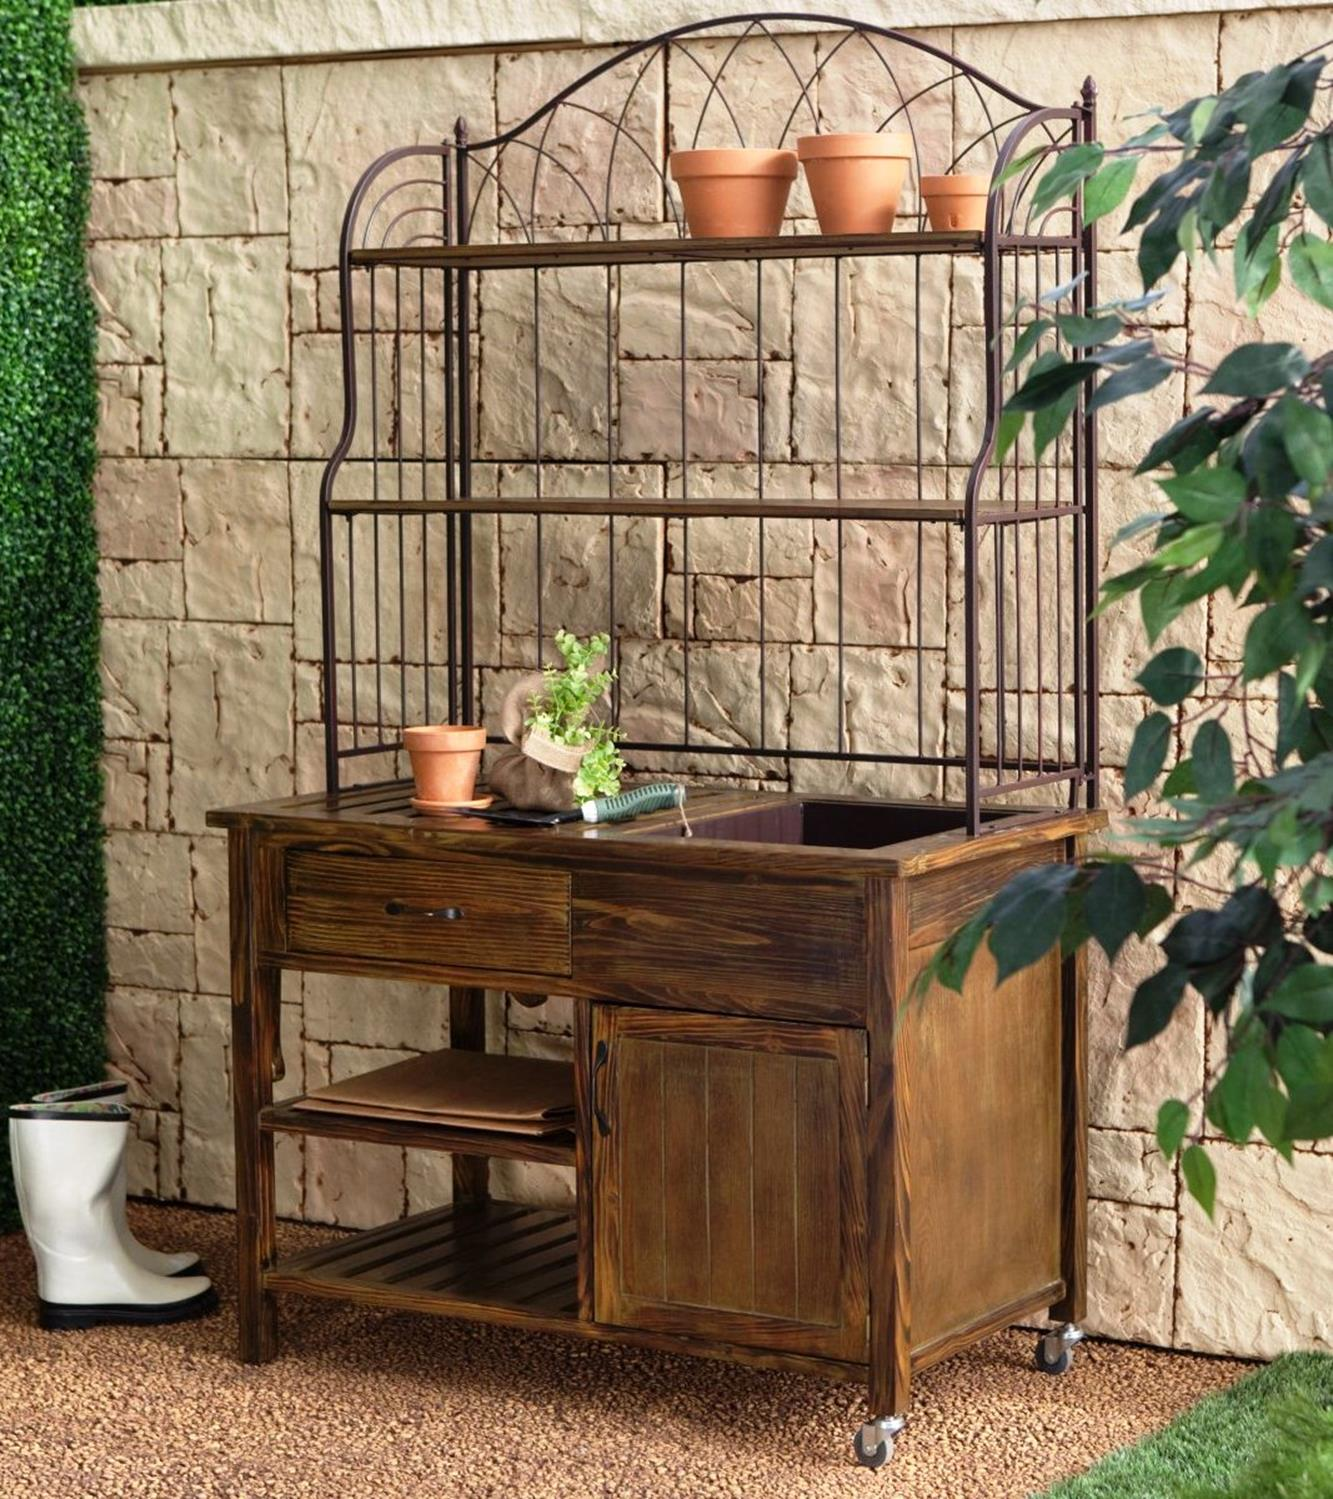 Outdoor Garden Potting Bench Design Ideas 28